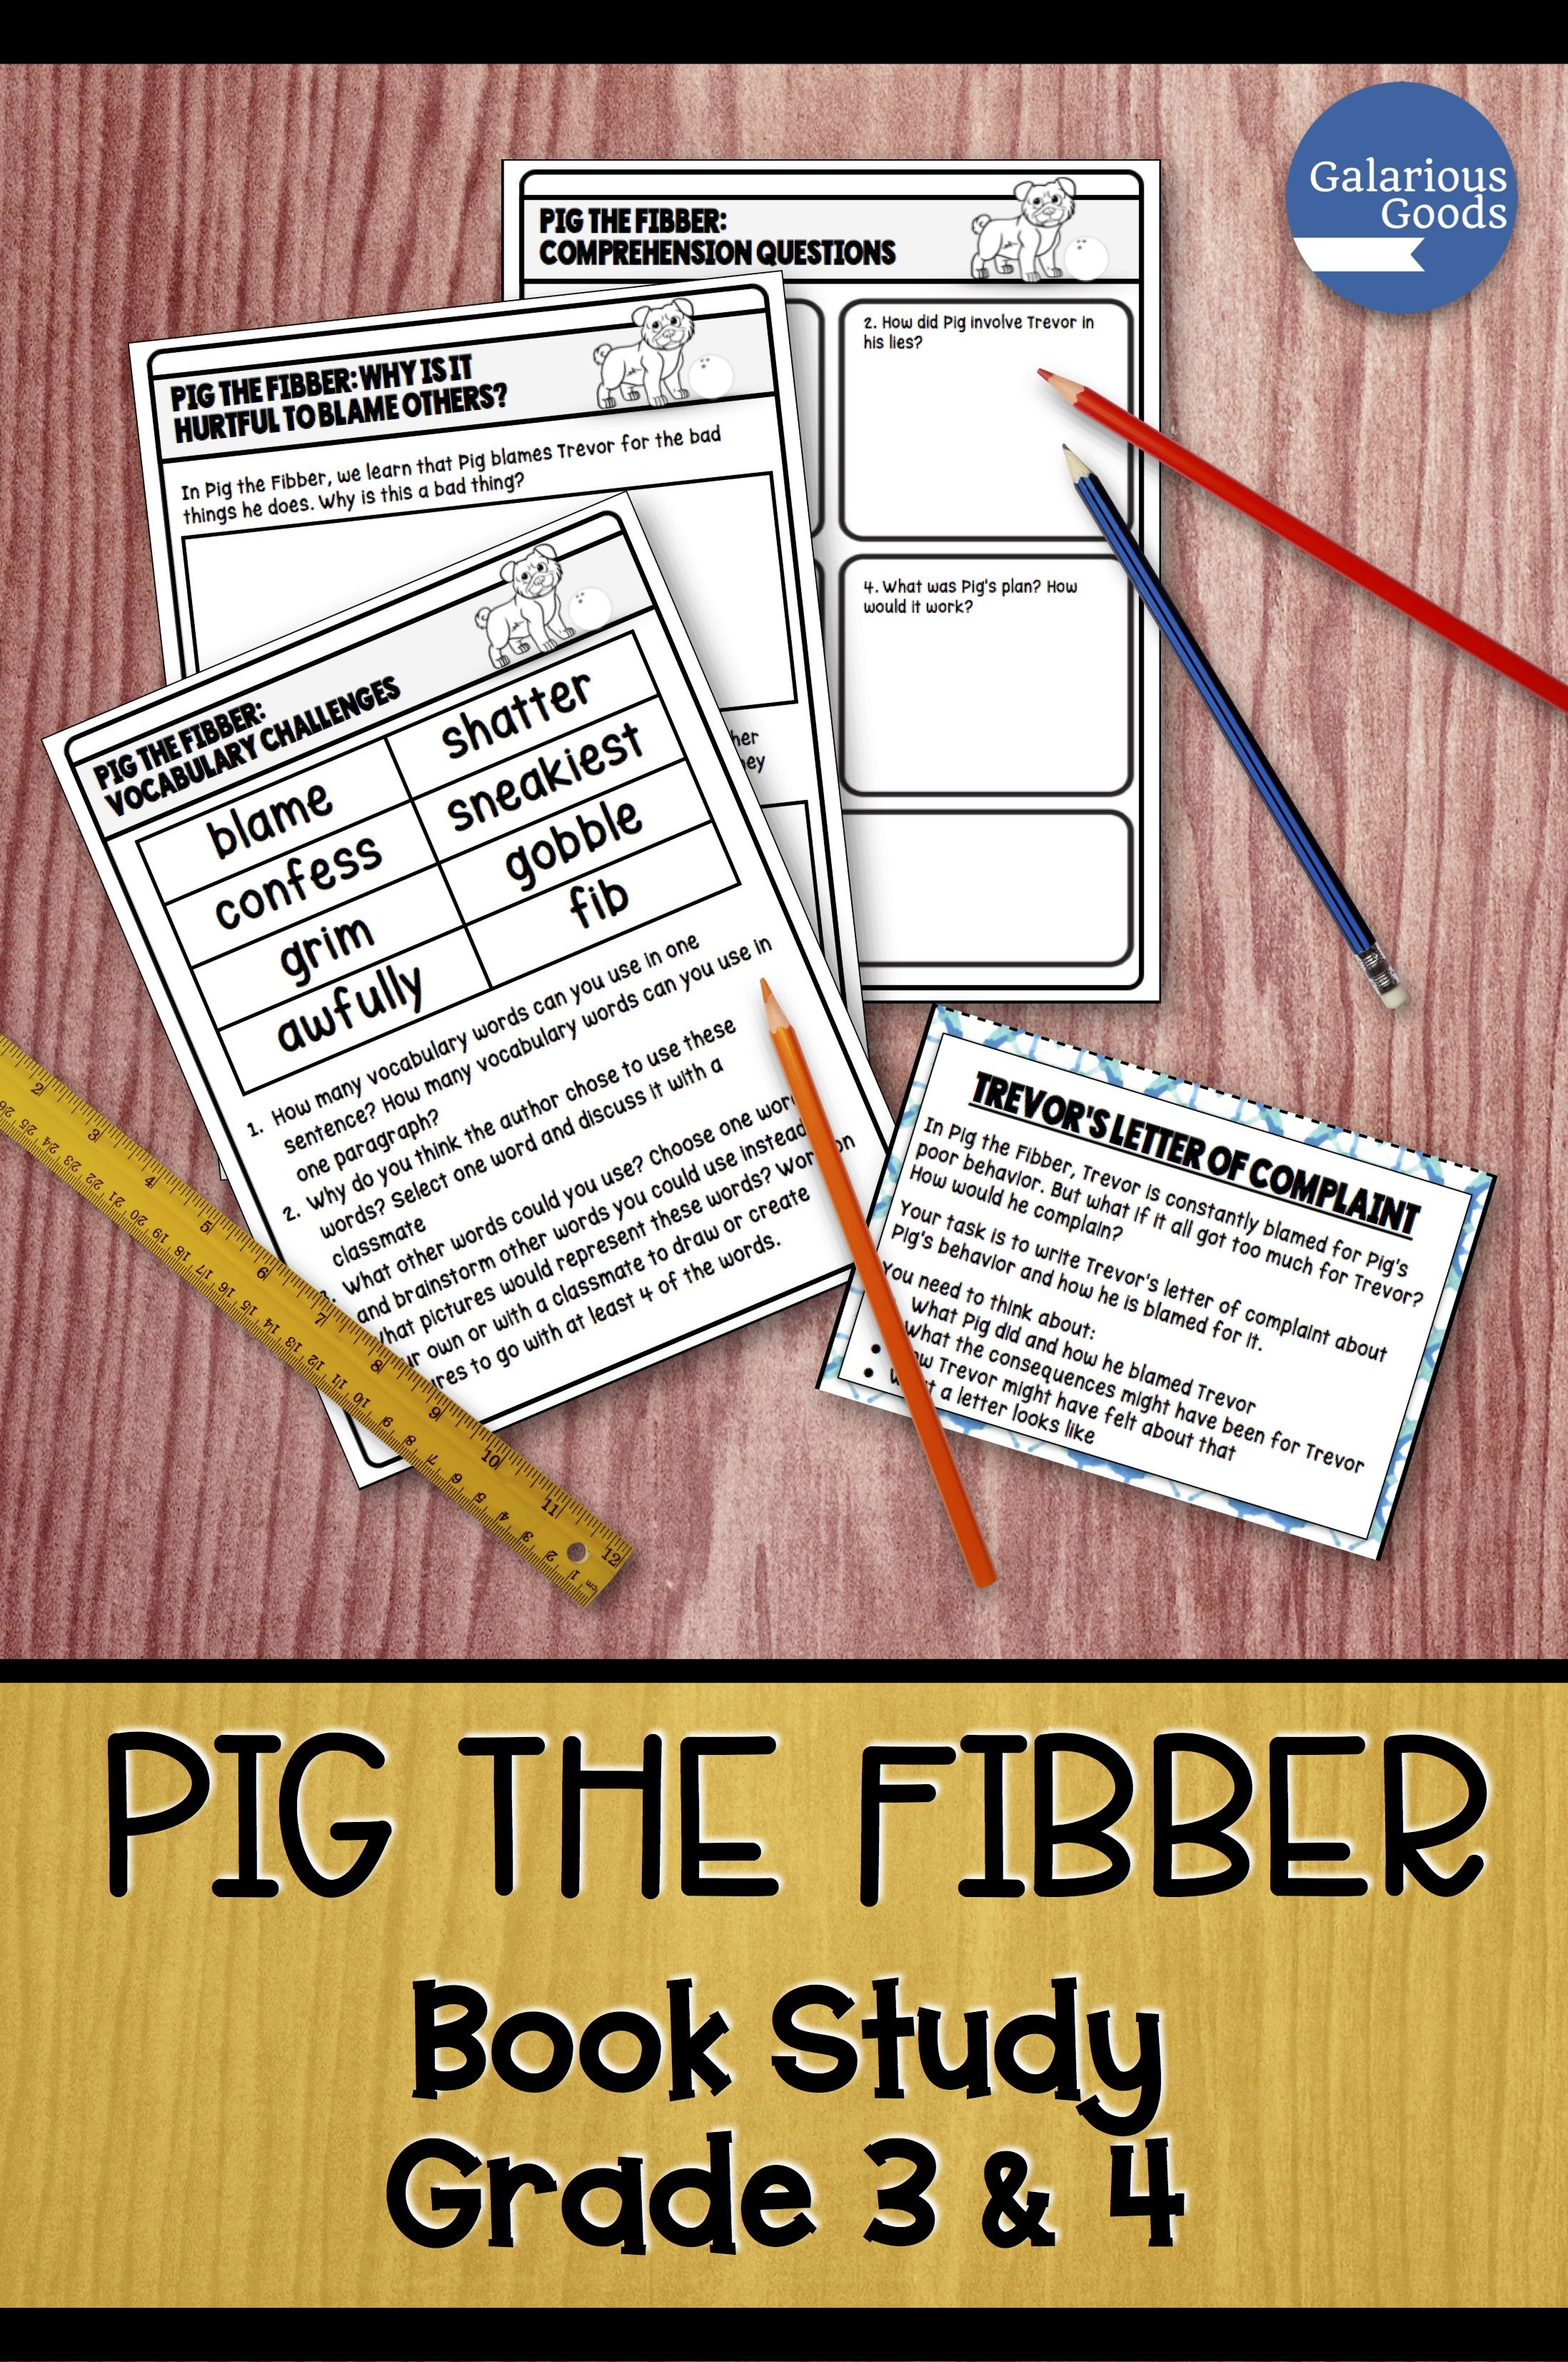 Comprehension discussion year 3 reading comprehension discussion questions array pig the fibber by aaron blabey picture book study pinterest rh pinterest com fandeluxe Image collections